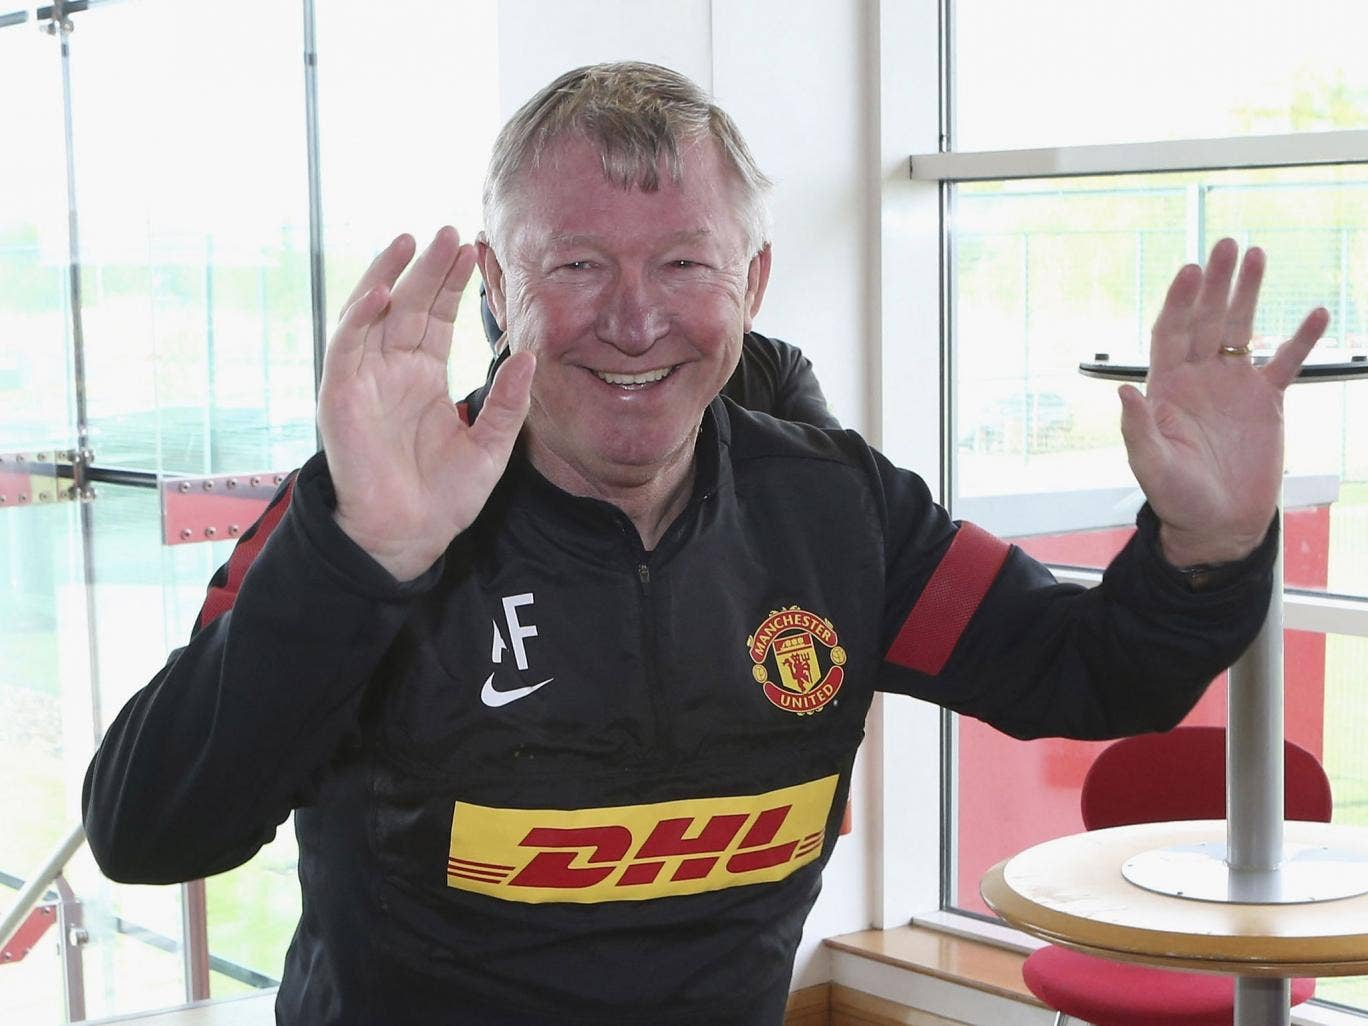 Sir Alex Ferguson in his sponsored United training top at his last Friday press conference